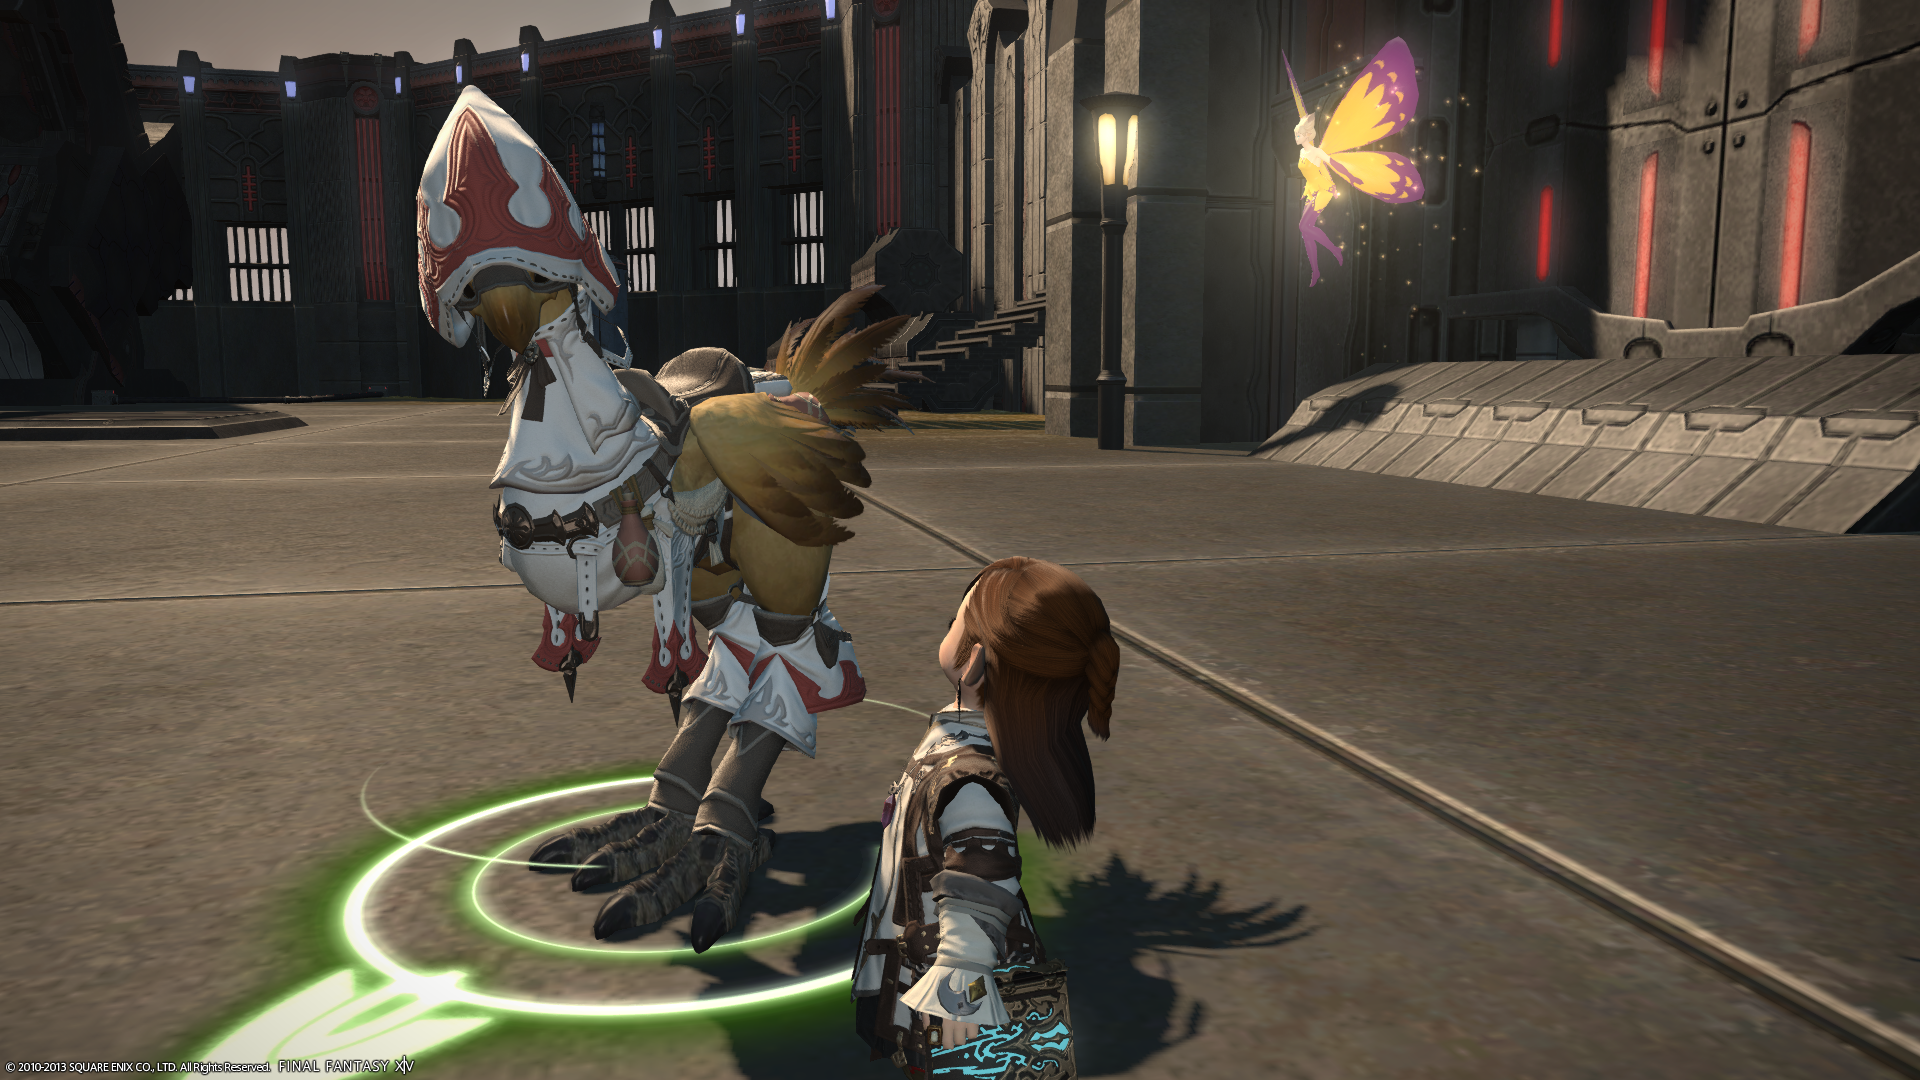 nep ffxiv know ears really this used shitpost with just like deal forum over month entire grind inb4 lala thread picture cute lalafell coming that fate posting soon